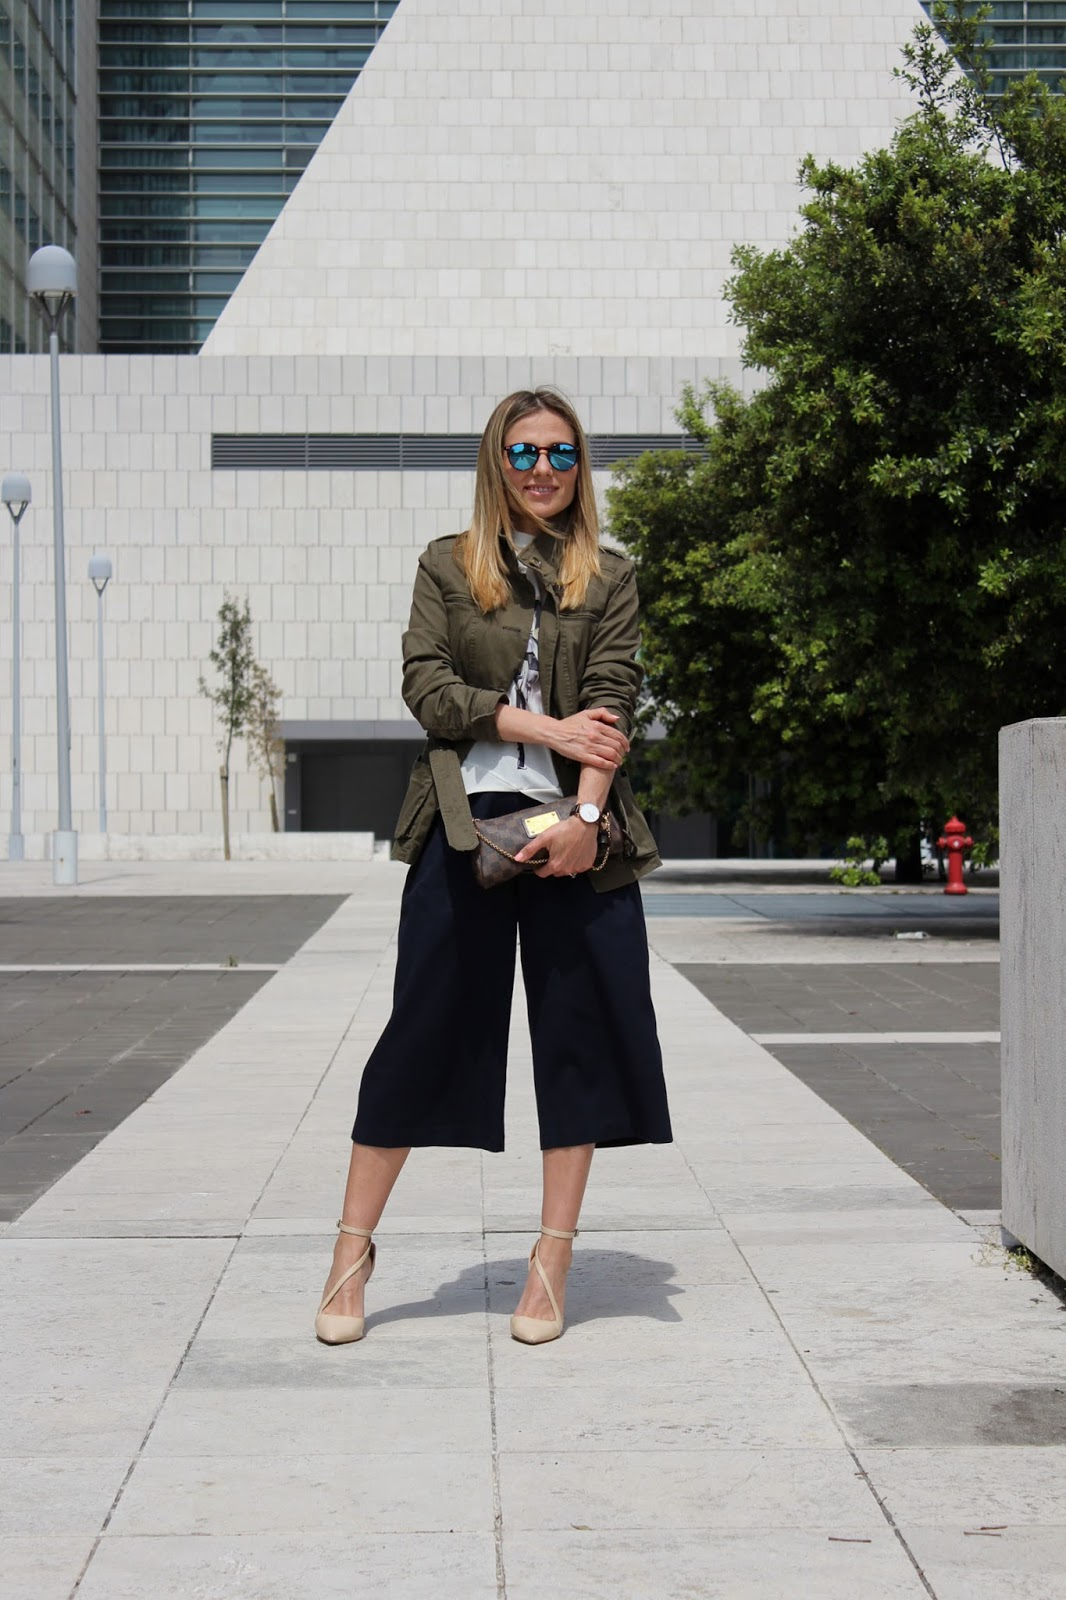 Eniwhere Fashion - Culottes and Military Jacket